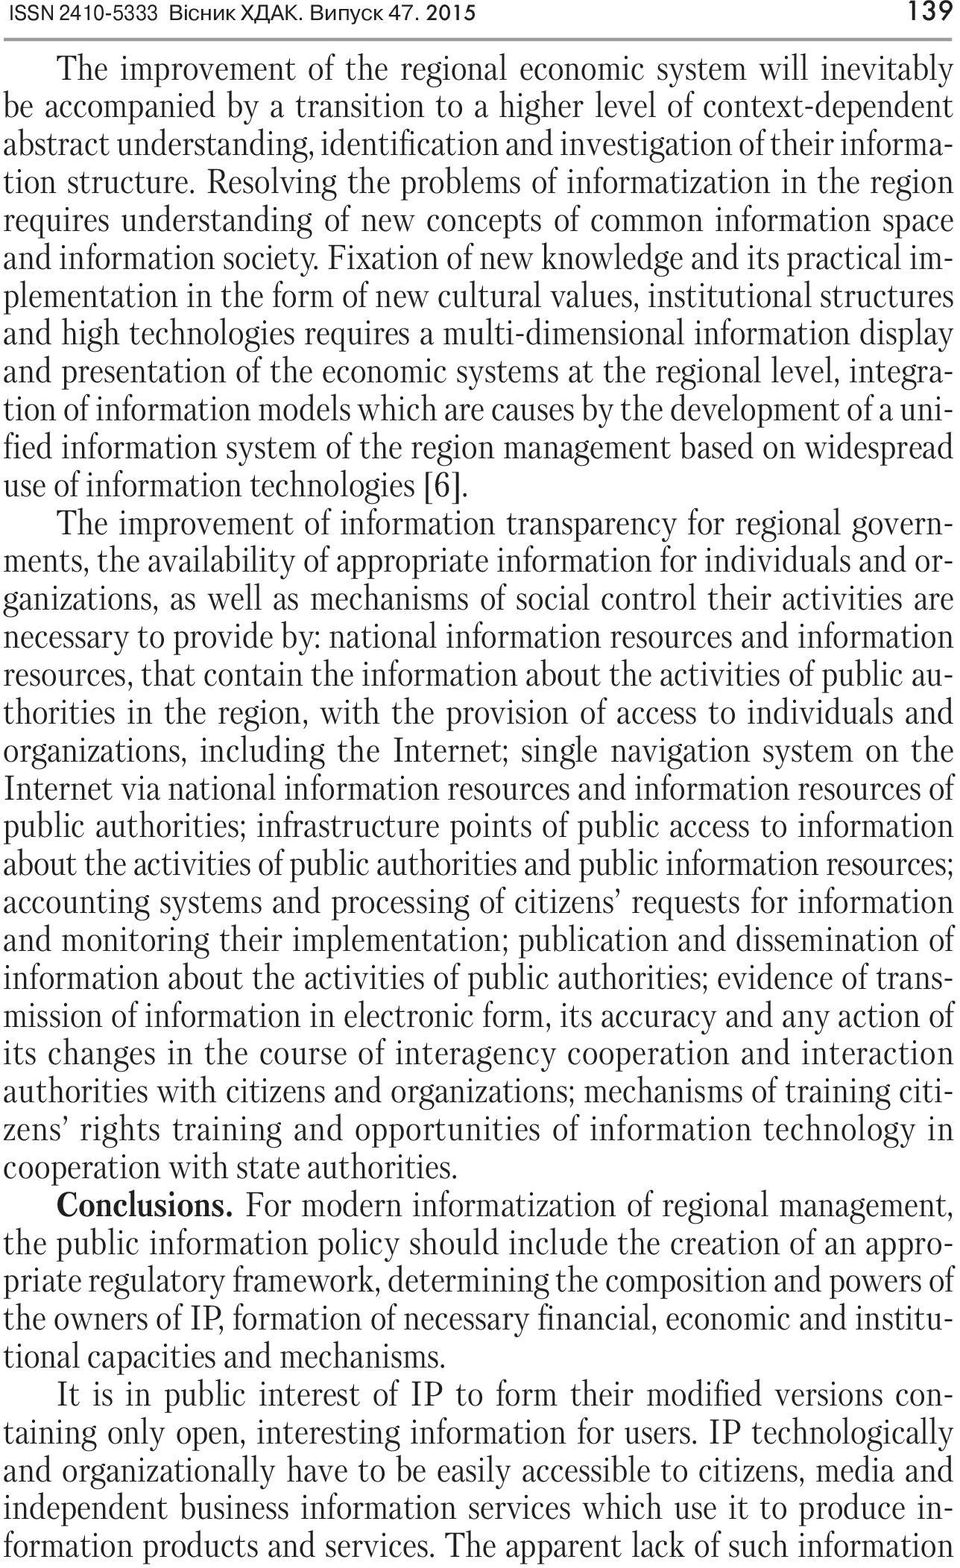 of their information structure. Resolving the problems of informatization in the region requires understanding of new concepts of common information space and information society.